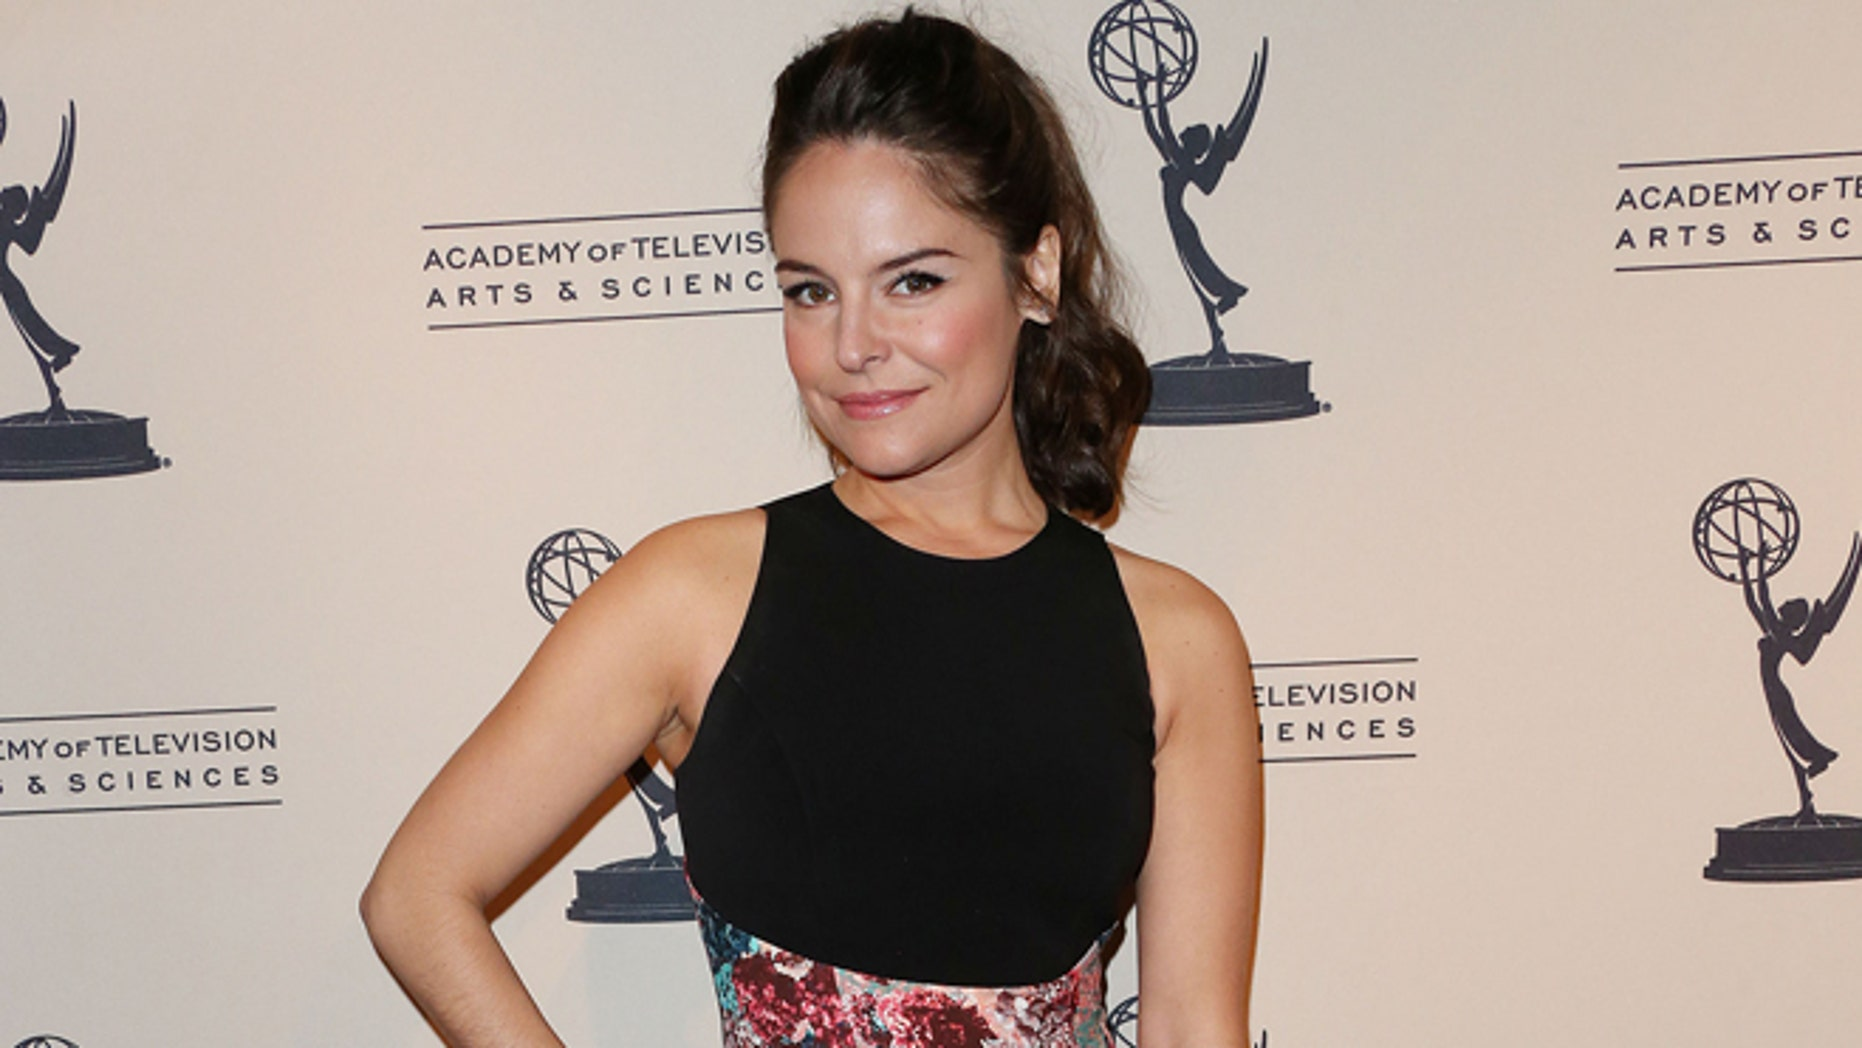 NORTH HOLLYWOOD, CA - NOVEMBER 07: Actress Yara Martinez attends The Television Academy Presents an Evening with Amazon Studios at the Leonard H. Goldenson Theatre on November 7, 2013 in North Hollywood, California.  (Photo by Frederick M. Brown/Getty Images)